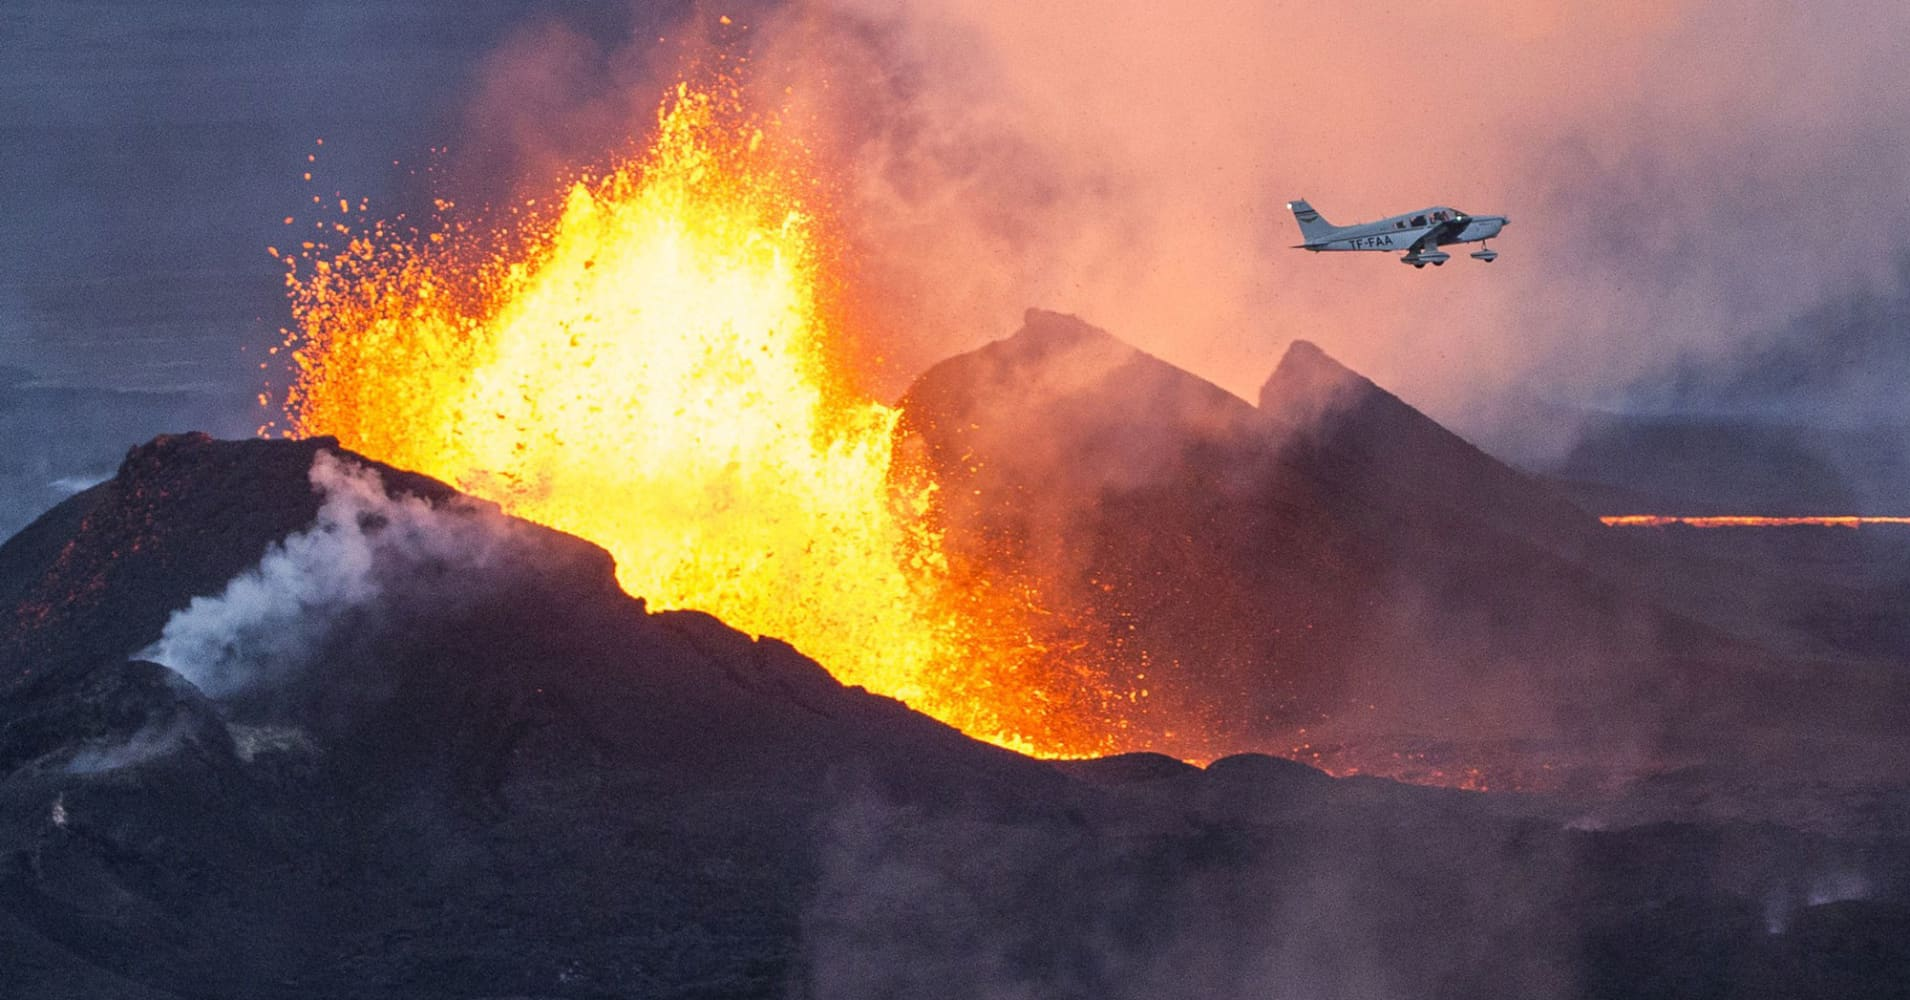 Scientists are trying to use satellites to forecast volcanic eruptions